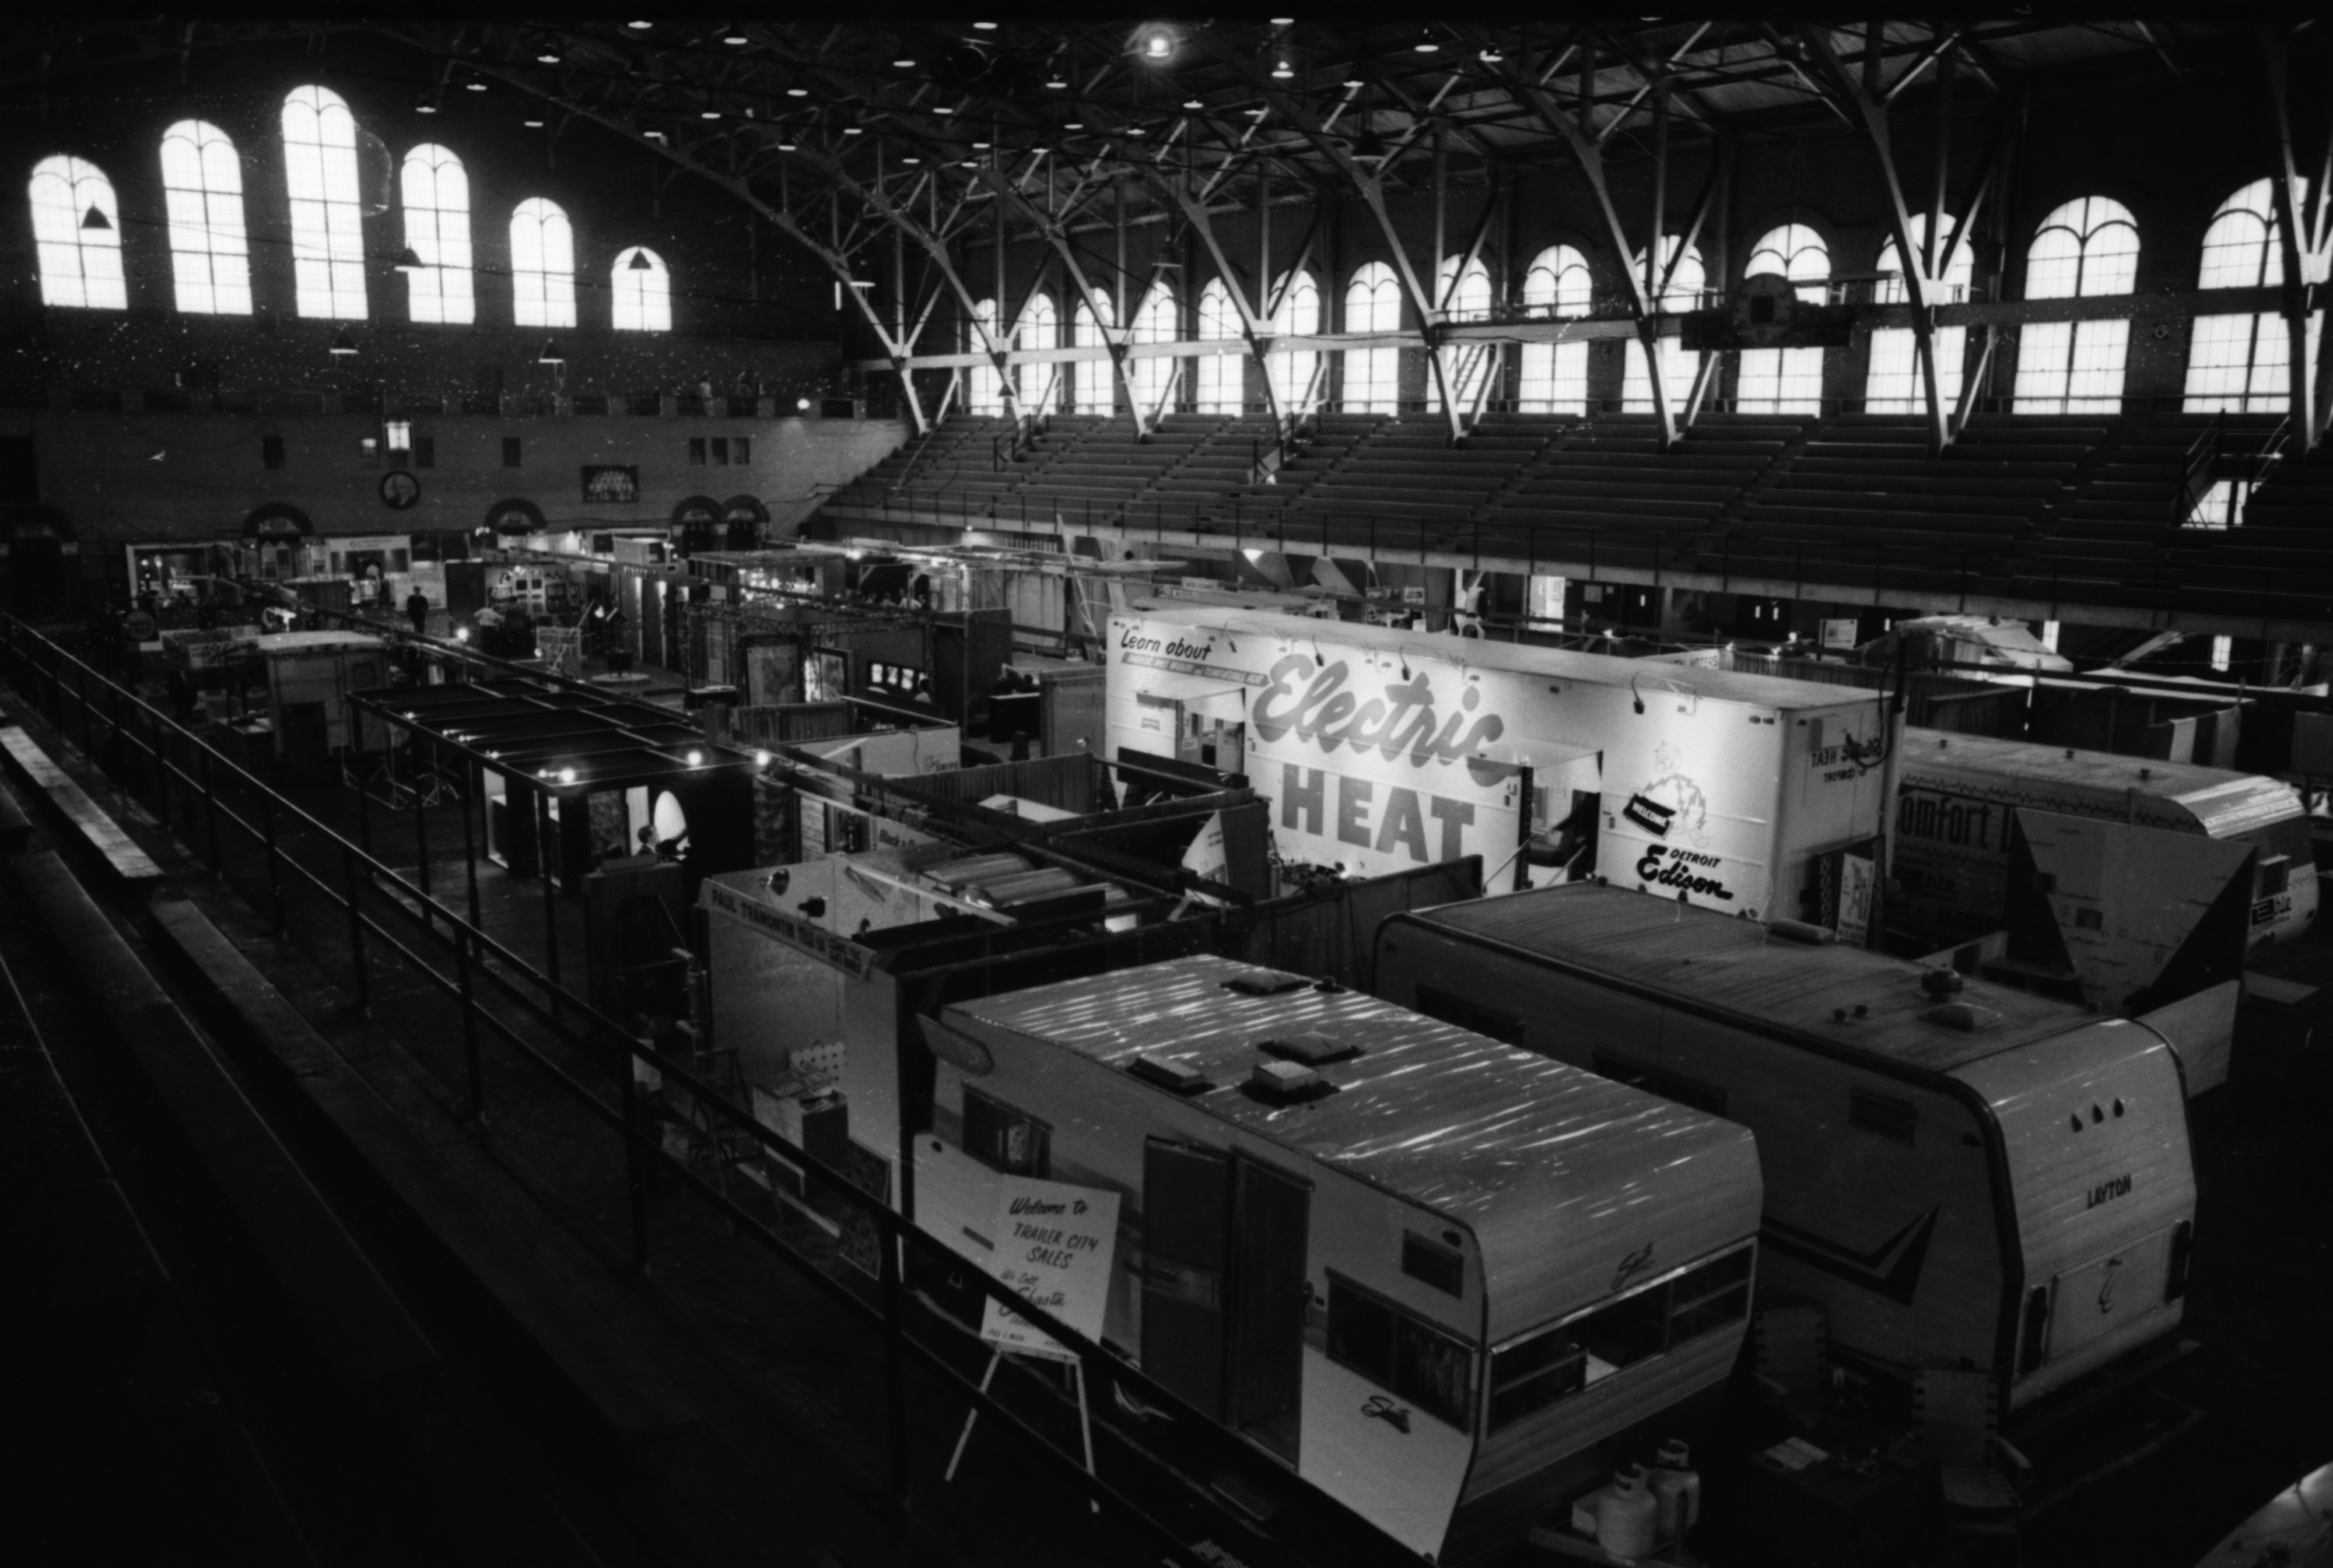 Builders Show, May 1967 image